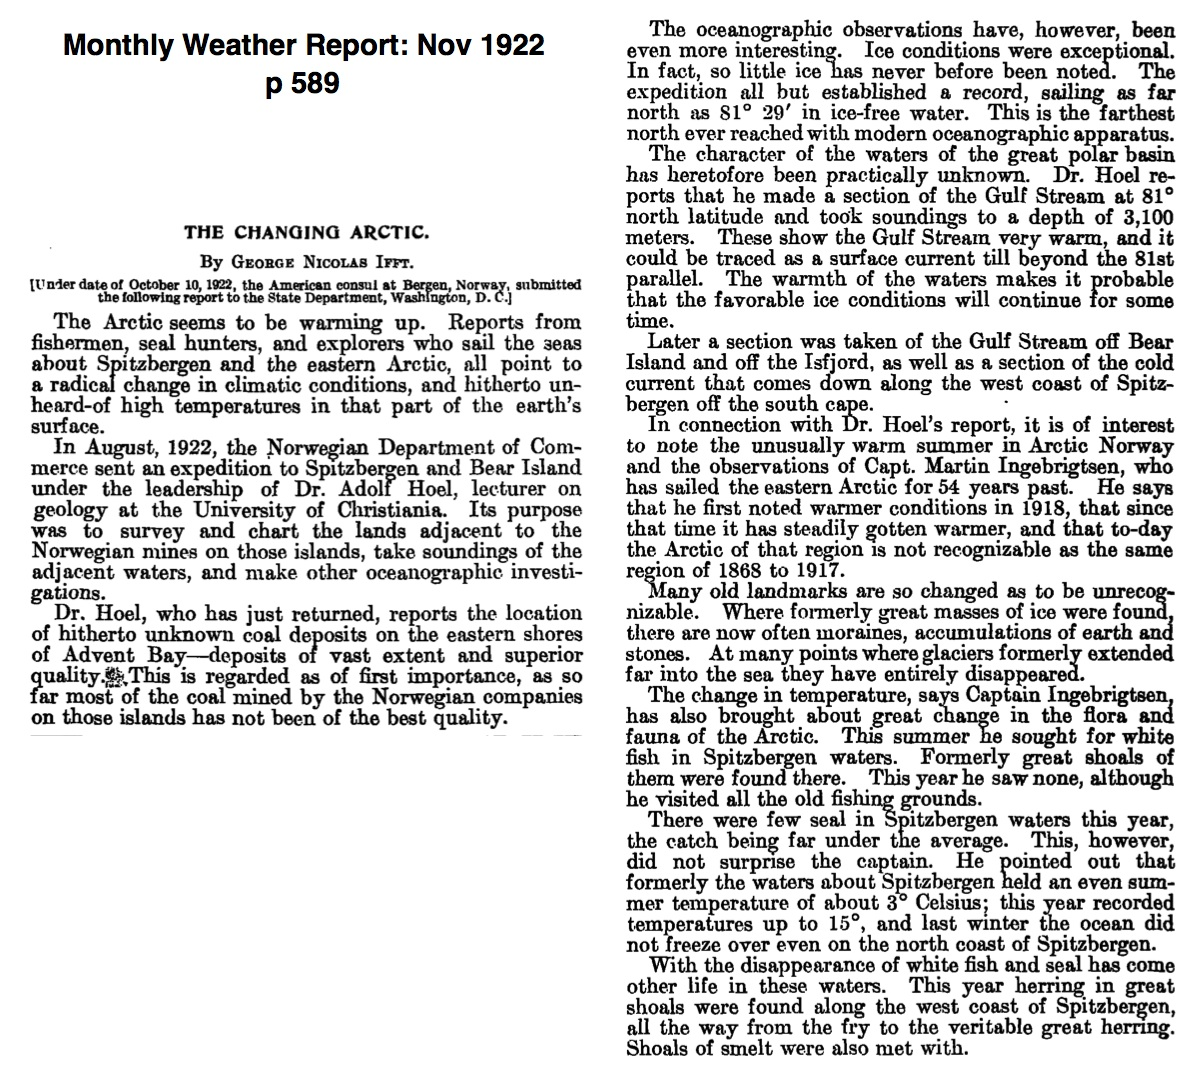 small article on global warming